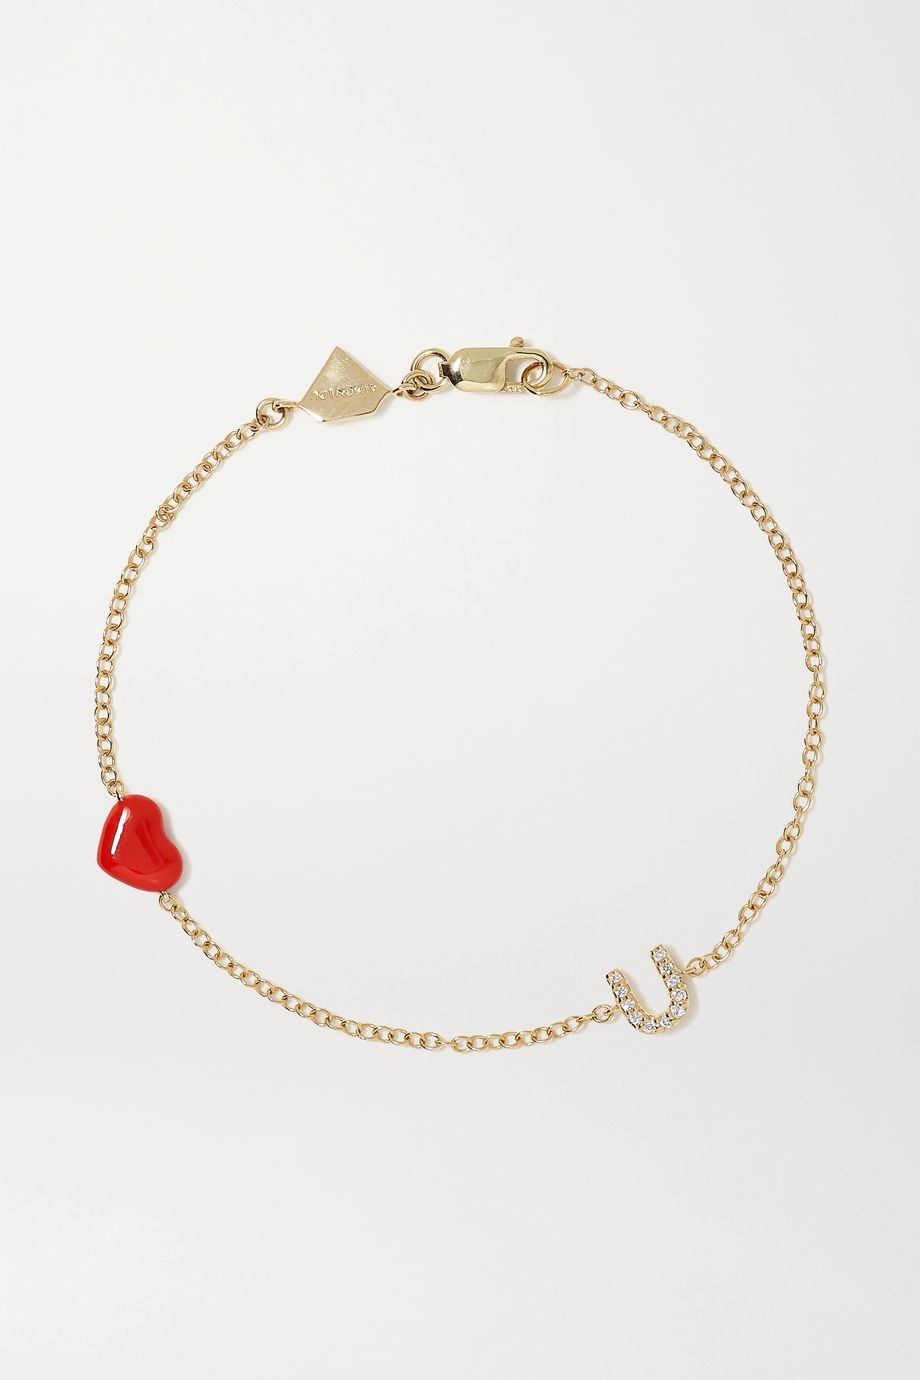 Alison Lou Bracelet en or 14 carats, diamants et émail Love U